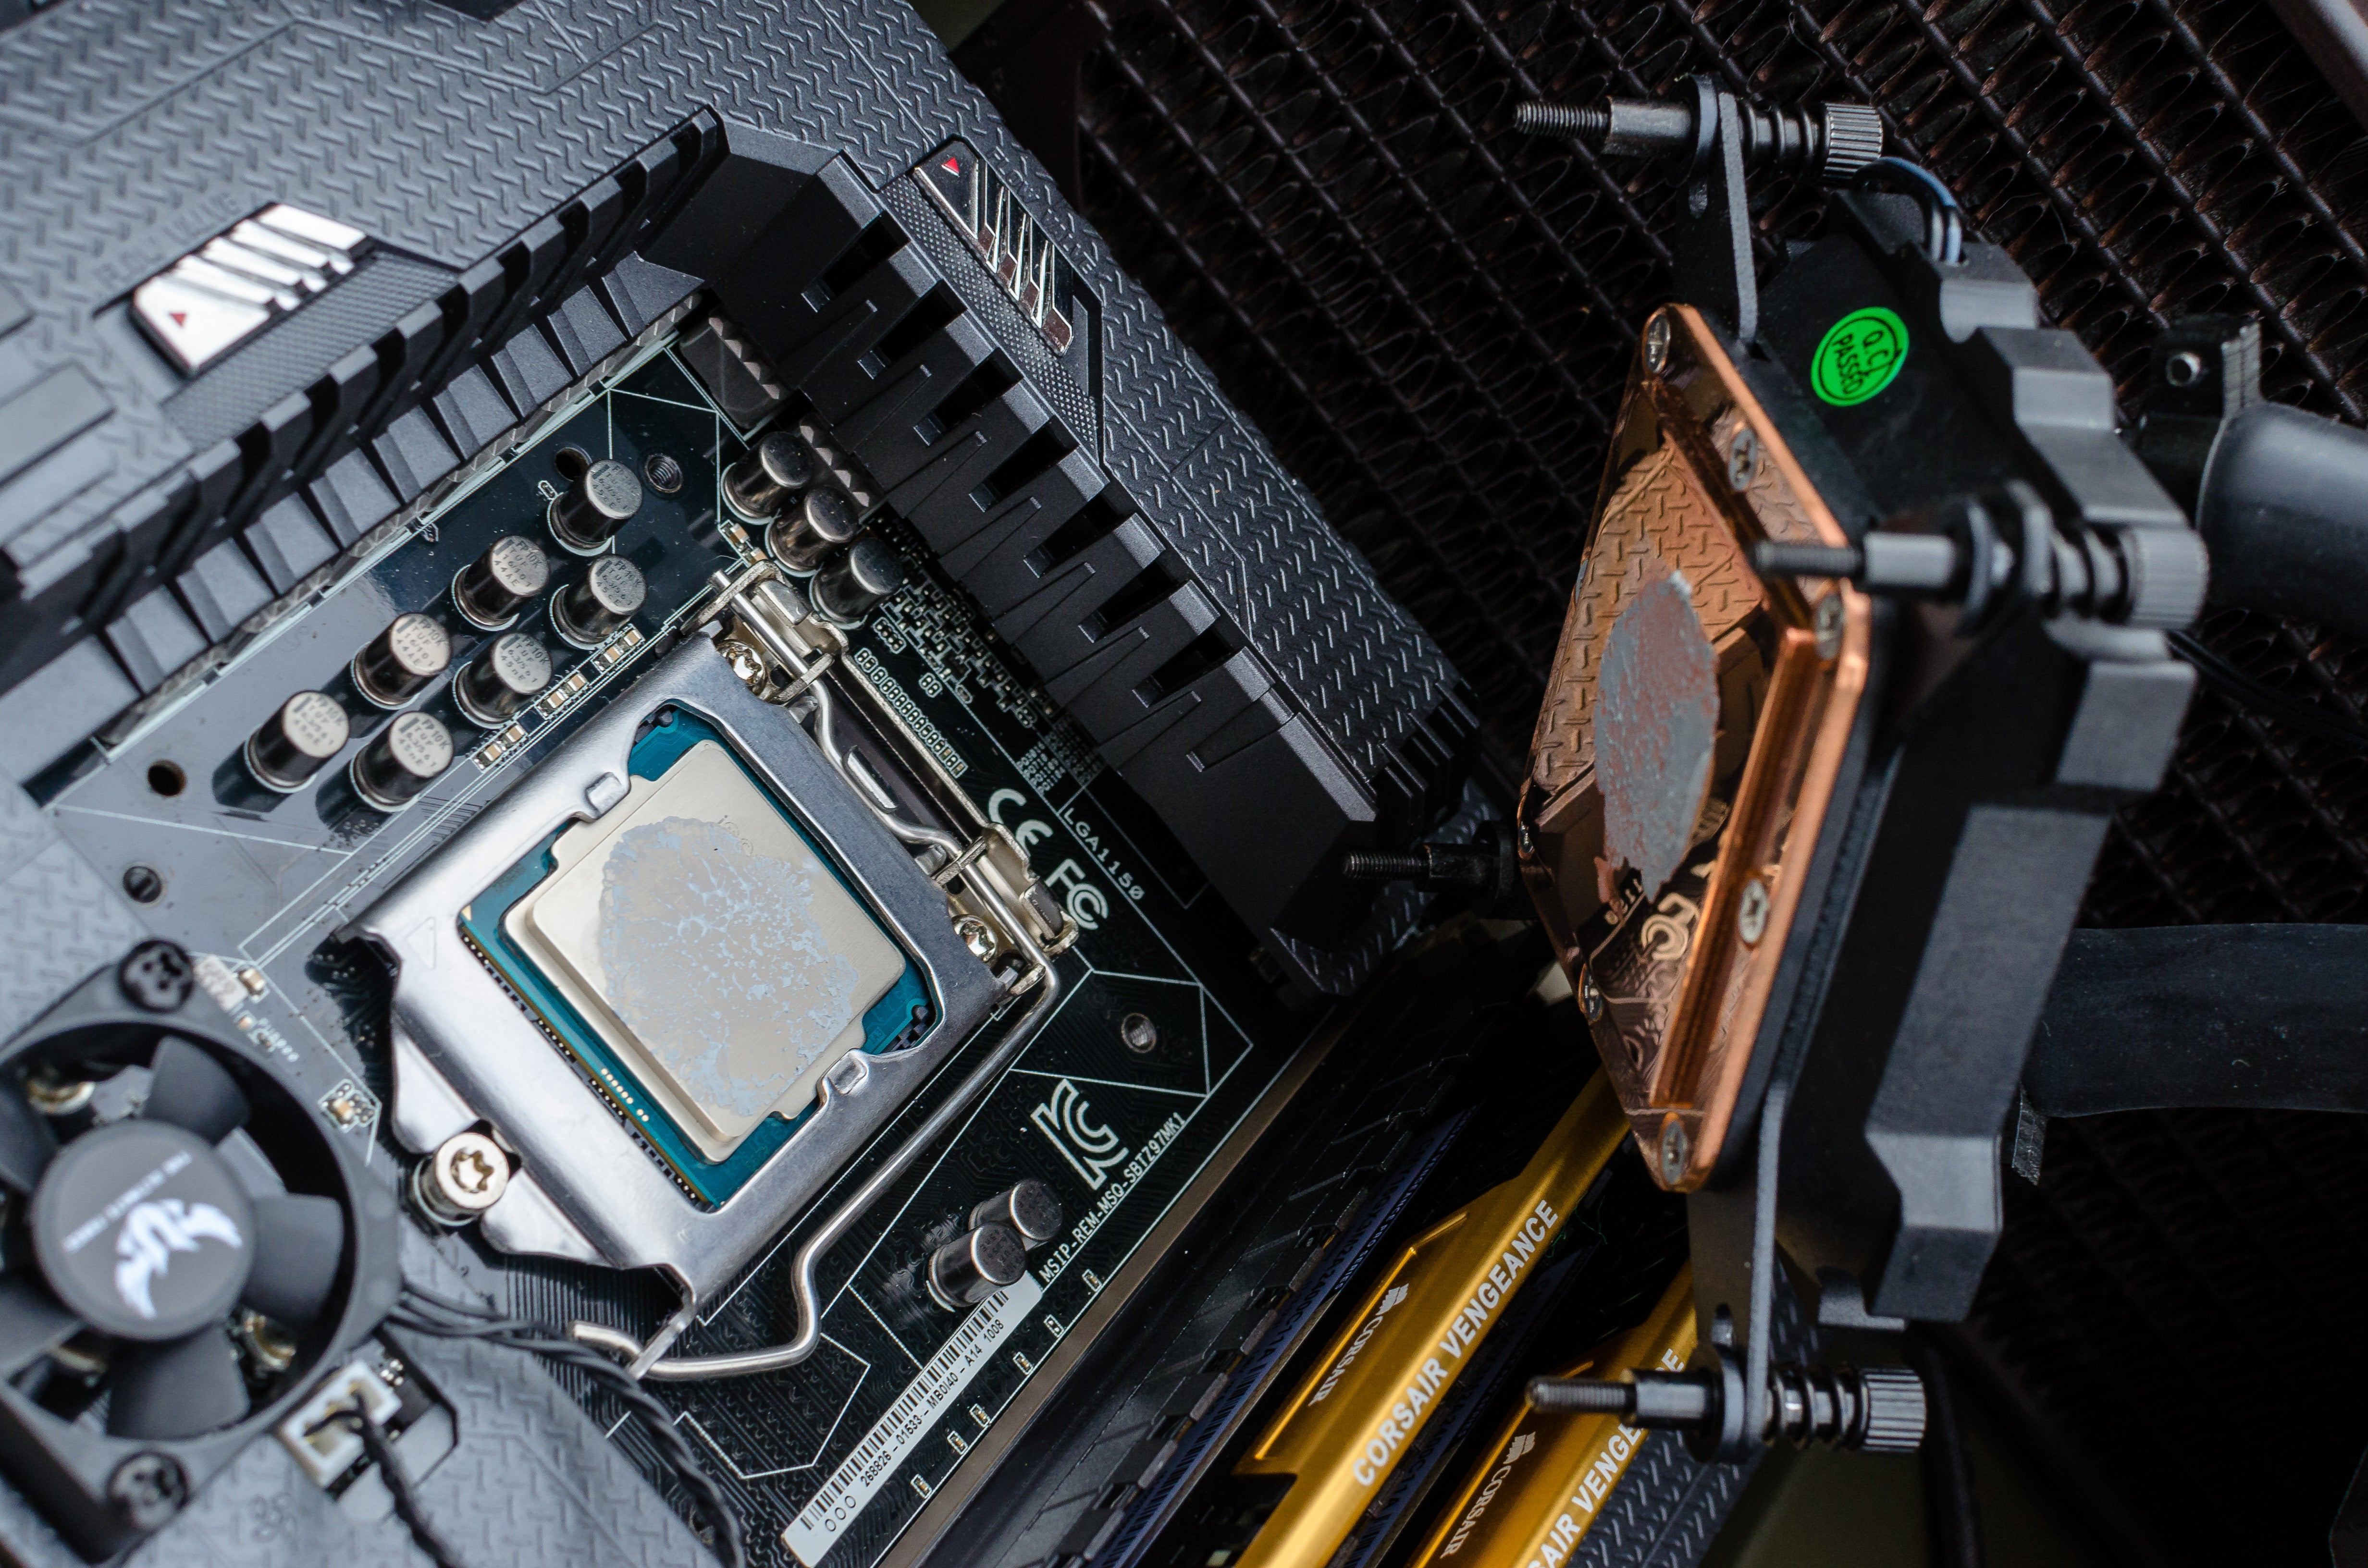 What would you recomend (motherboard, Processor)?